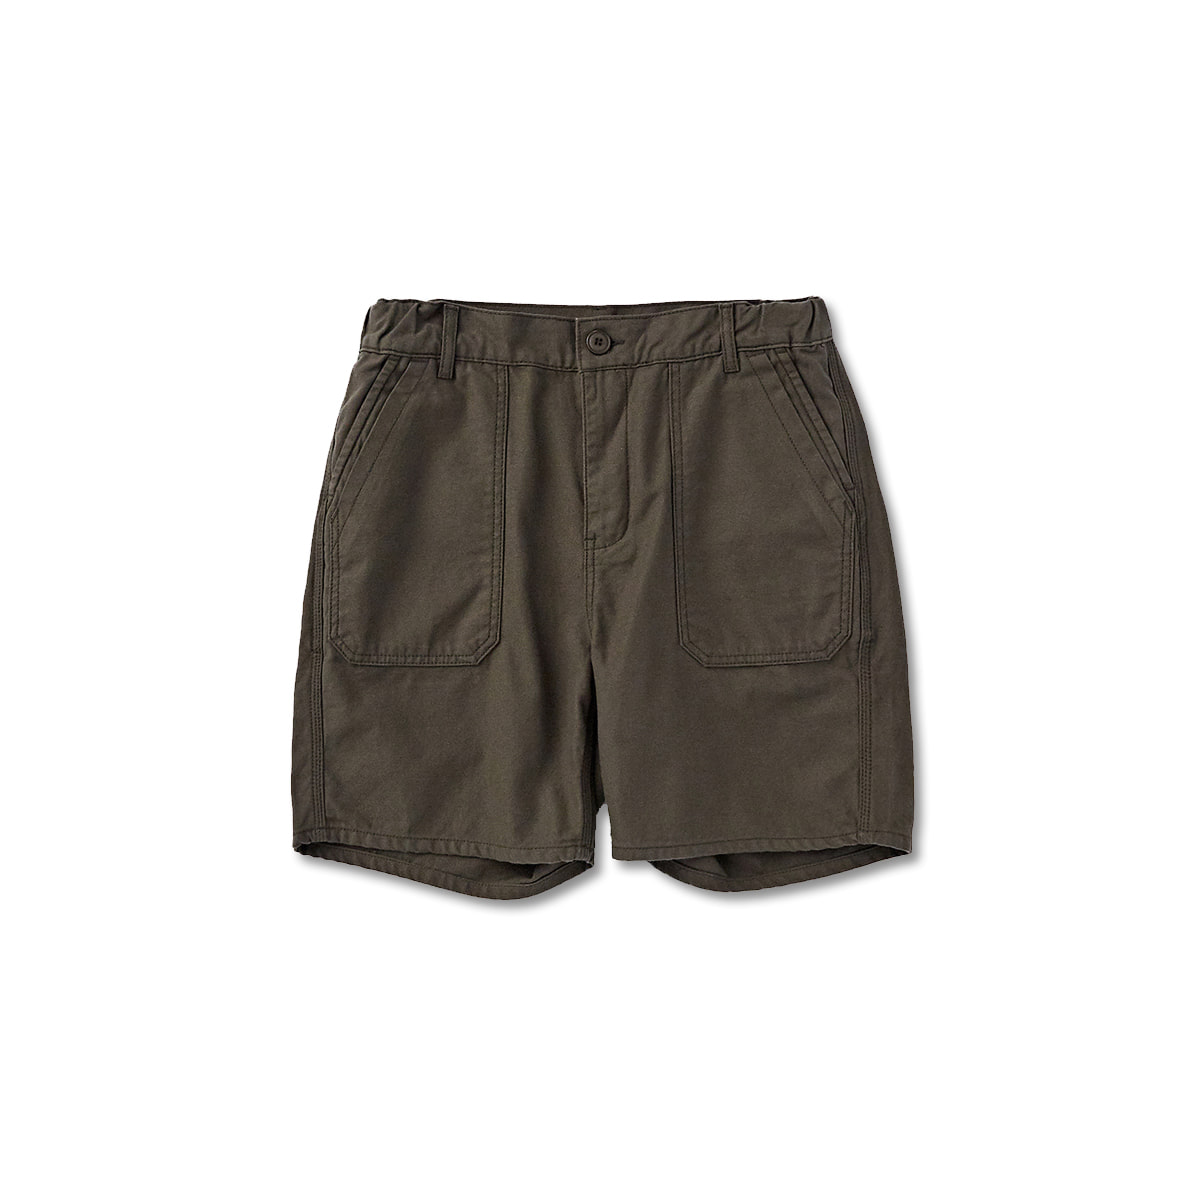 [COWORKERS] FATIGUE SHORT PANTS 'OLIVE'